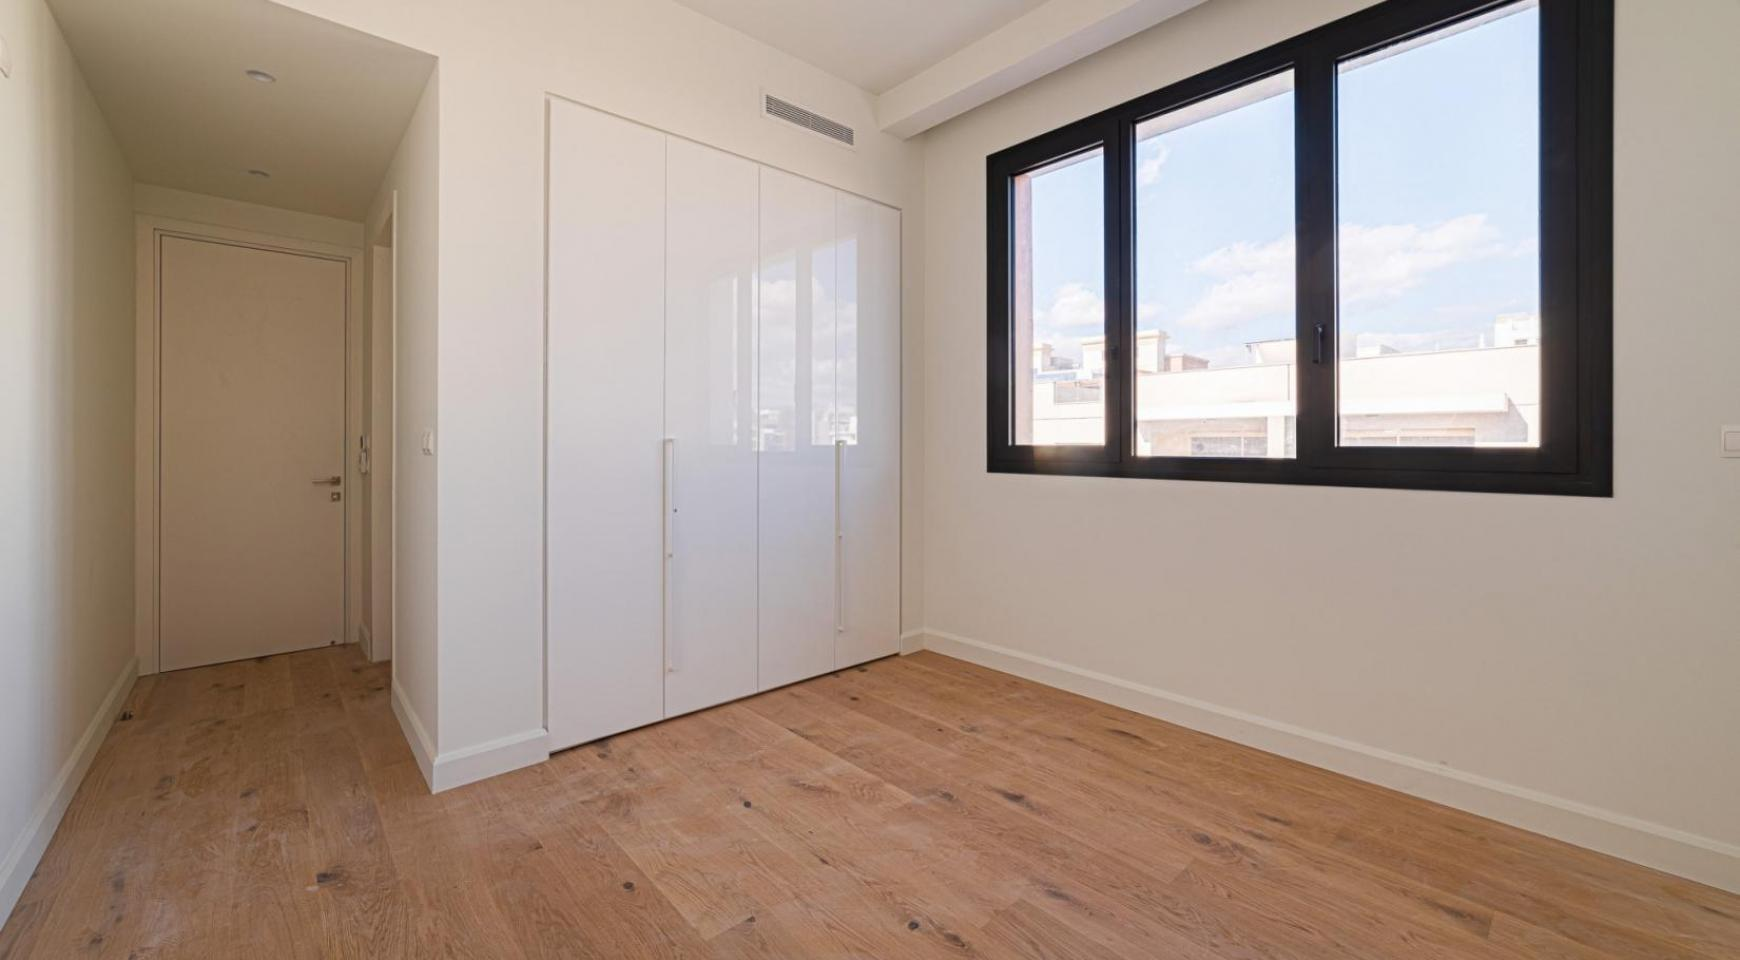 Hortensia Residence, Apt. 302. 2 Bedroom Apartment within a New Complex near the Sea  - 43